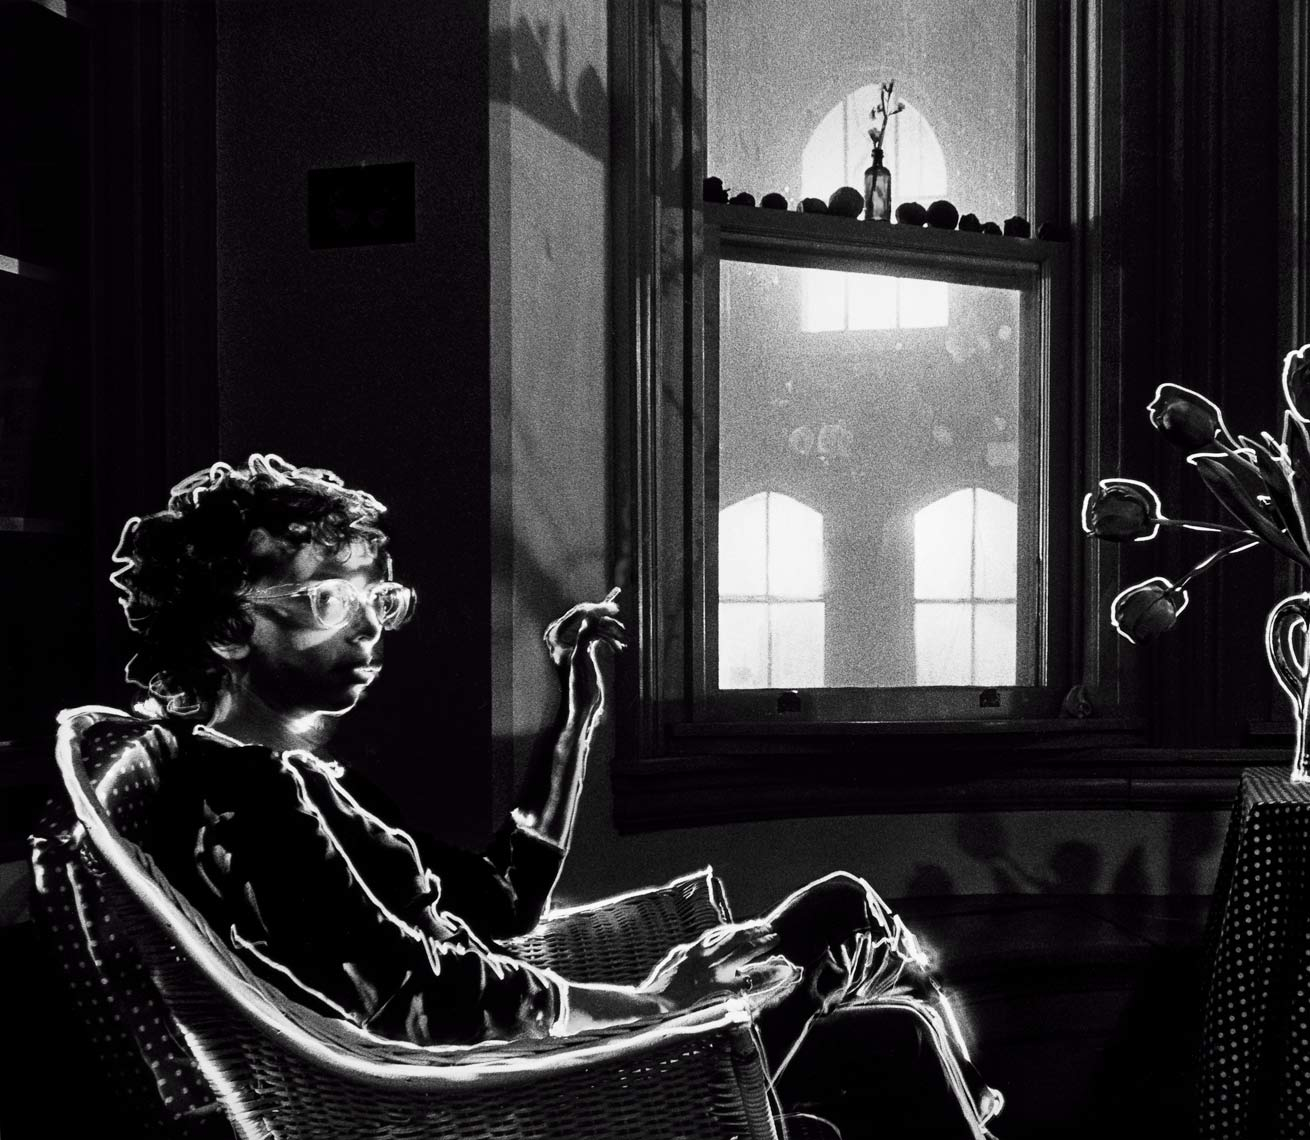 David Lebe; Charlie Smoking, 1982, light drawing, black and white photograph